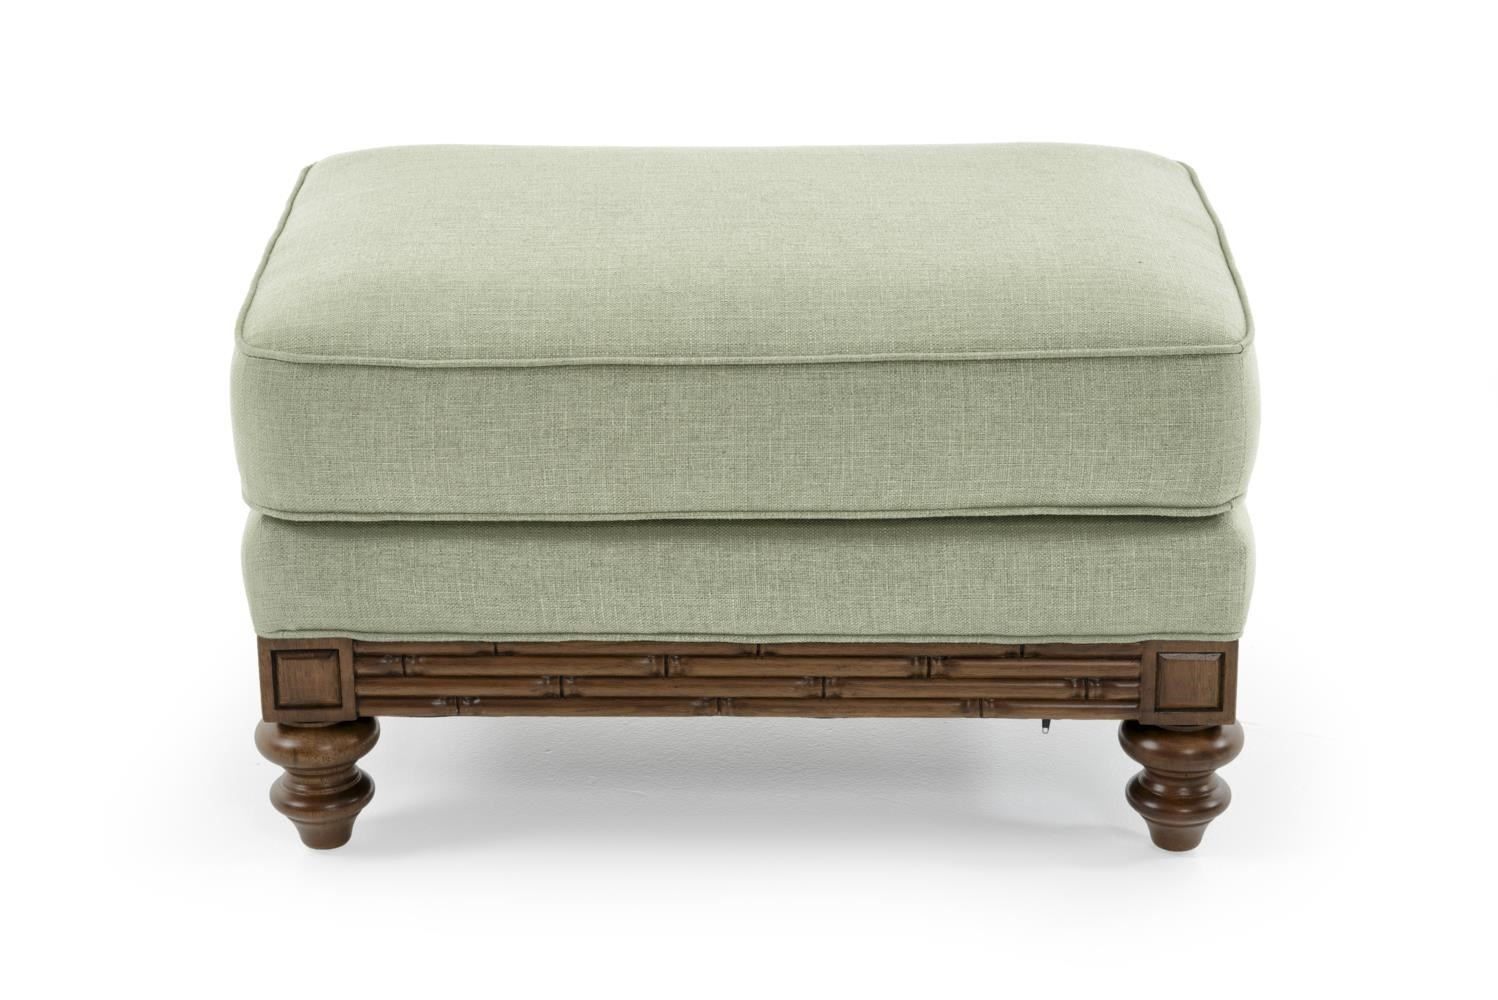 Synergy Home Furnishings 1526 Ottoman - Item Number: 1526-30 4045-26